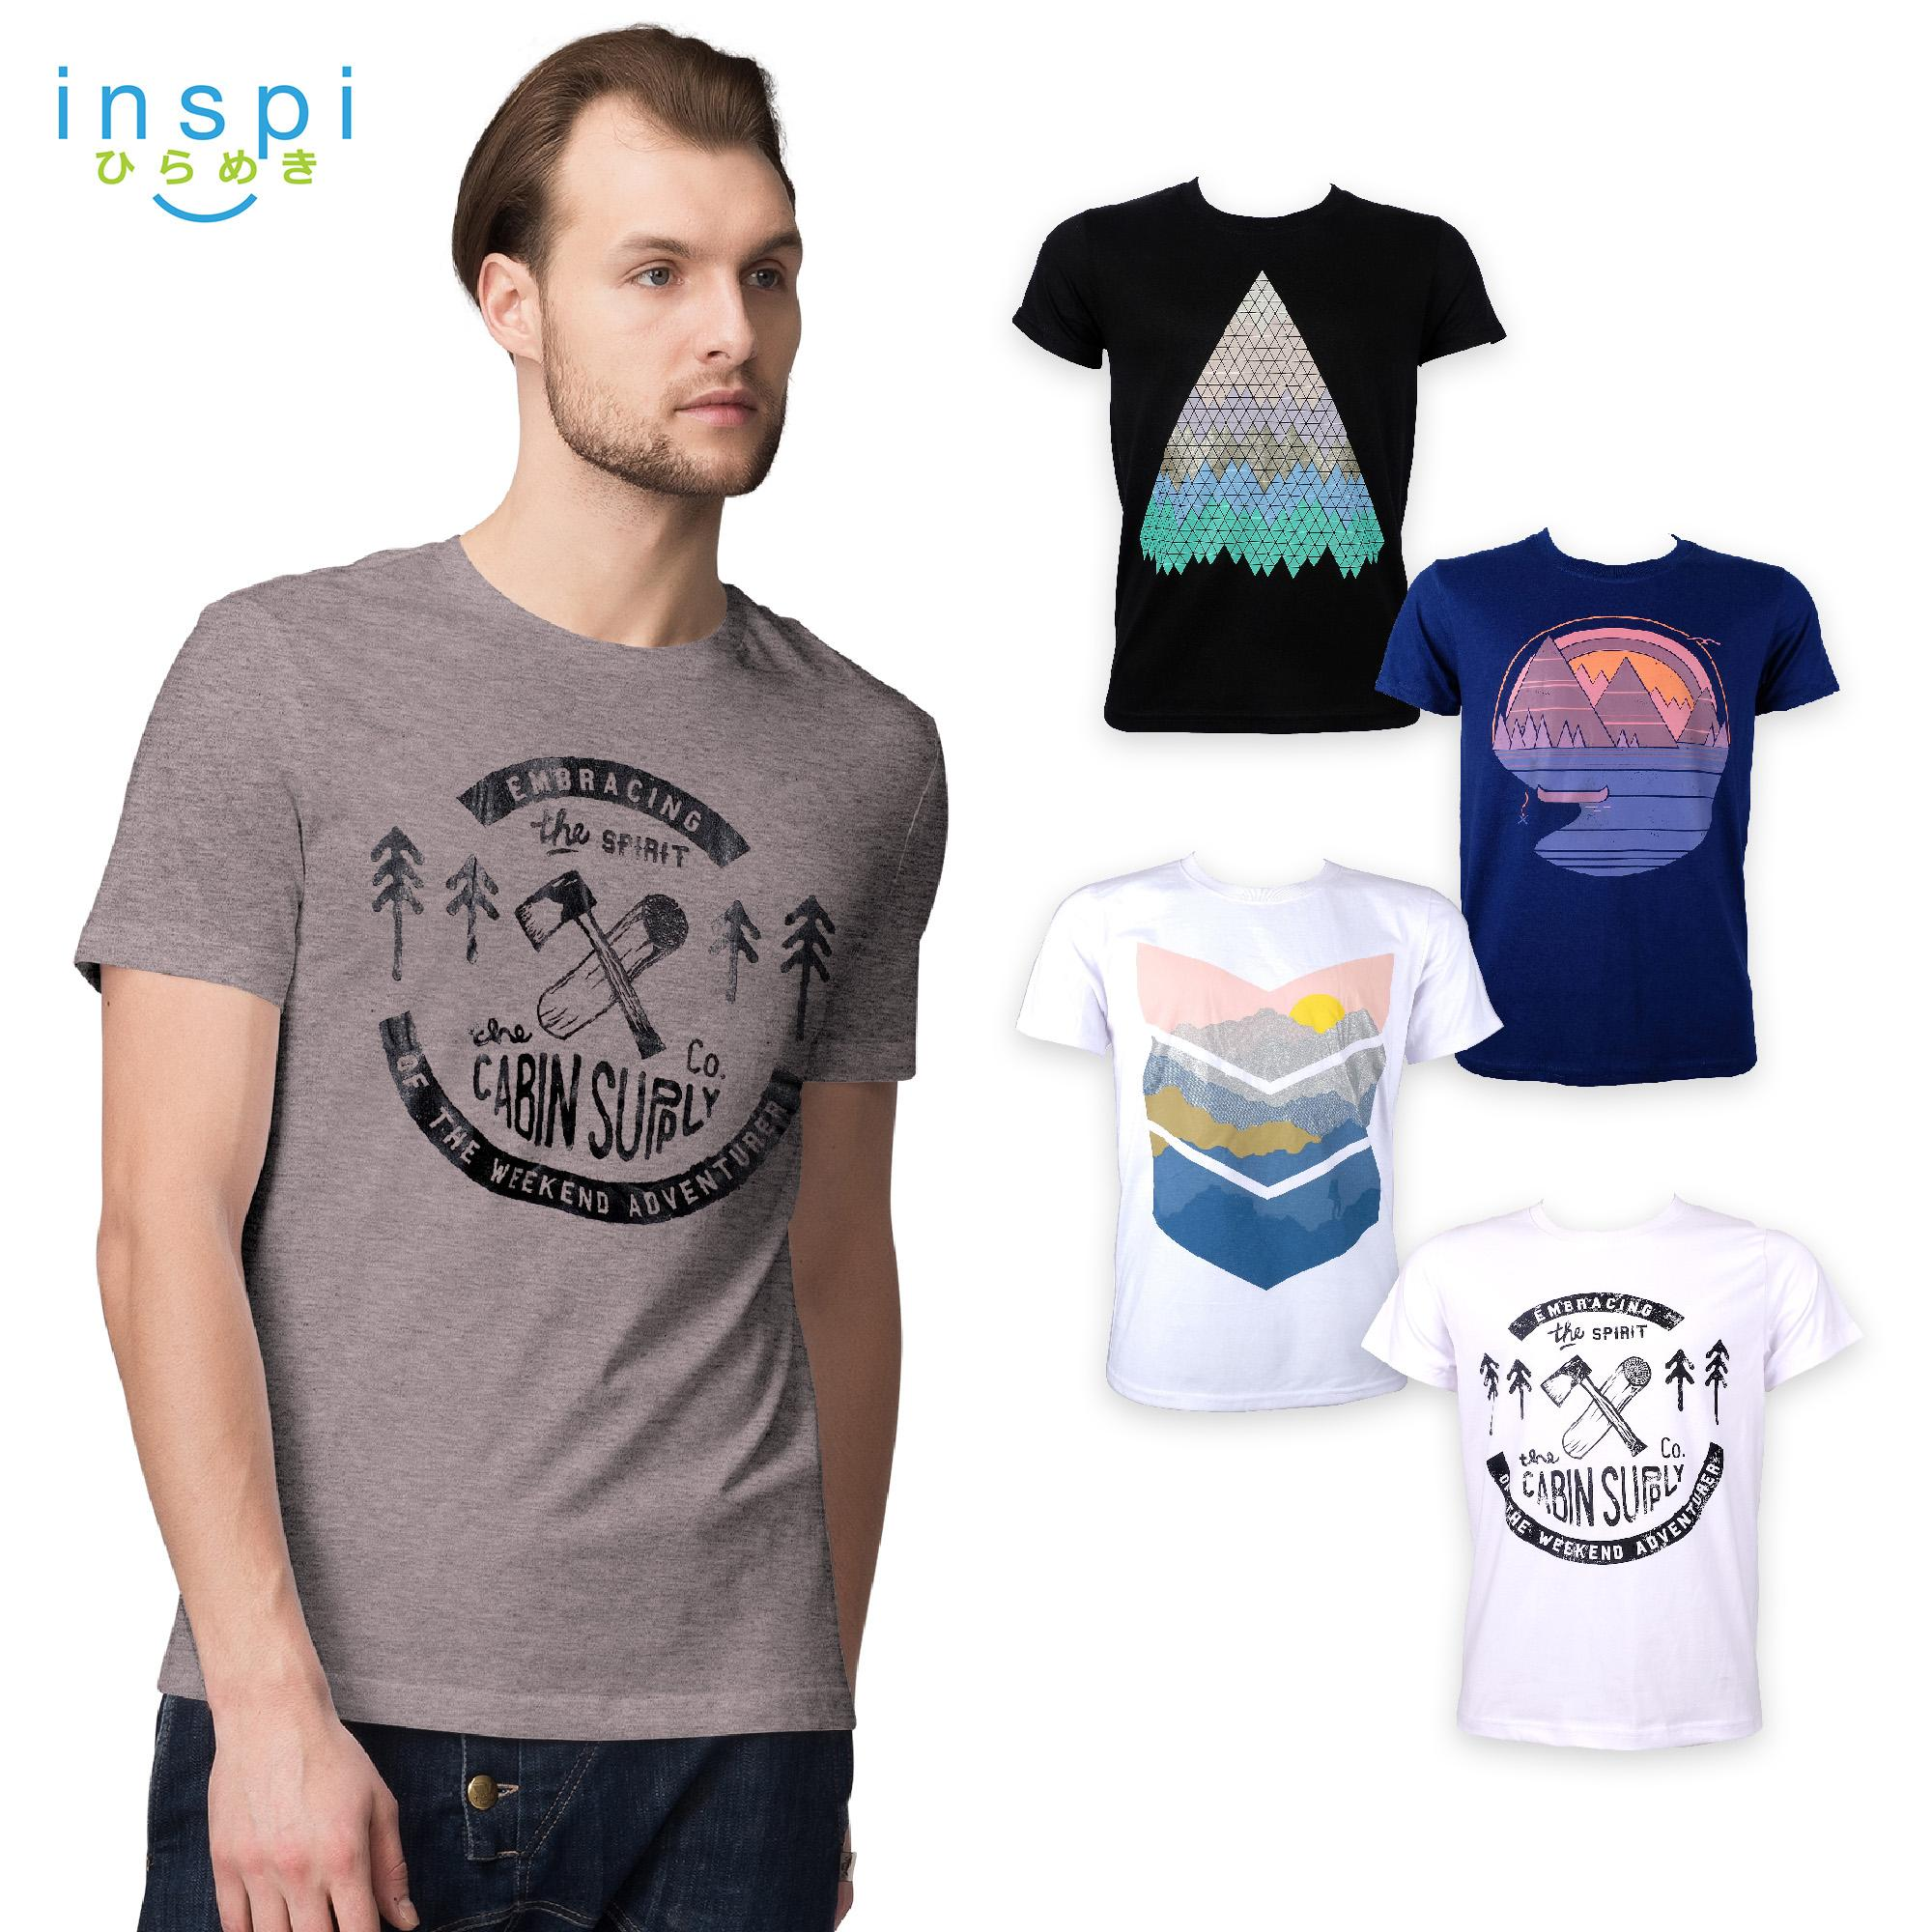 a05ed20d7 INSPI Tees Outdoors Collection tshirt printed graphic tee Mens t shirt  shirts for men tshirts sale